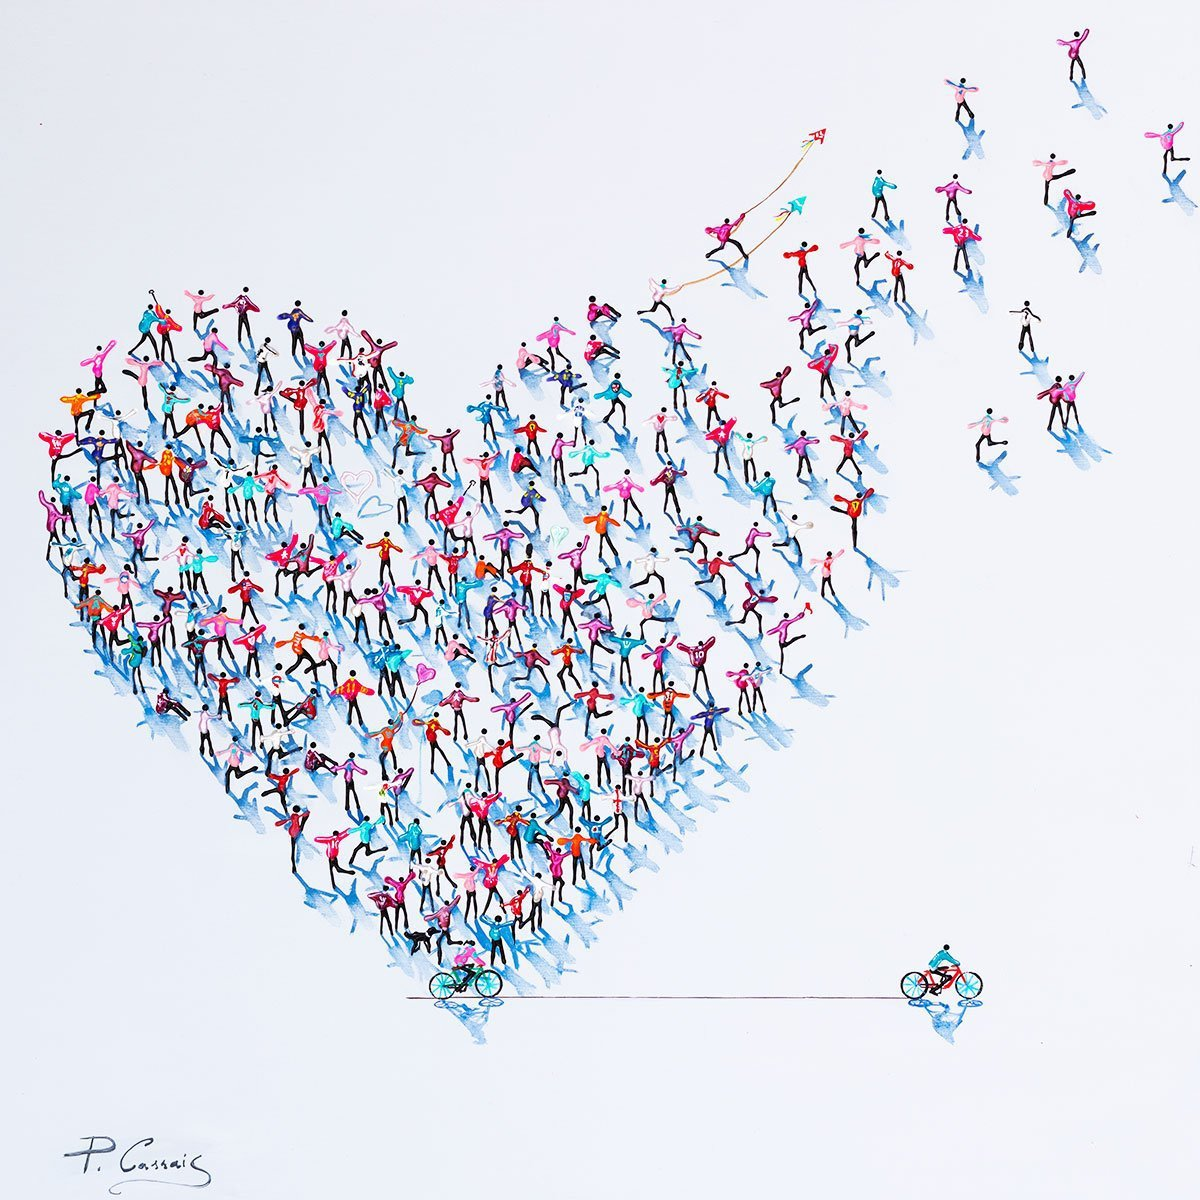 Spreading the Love - Original - SOLD Paola Cassais Framed